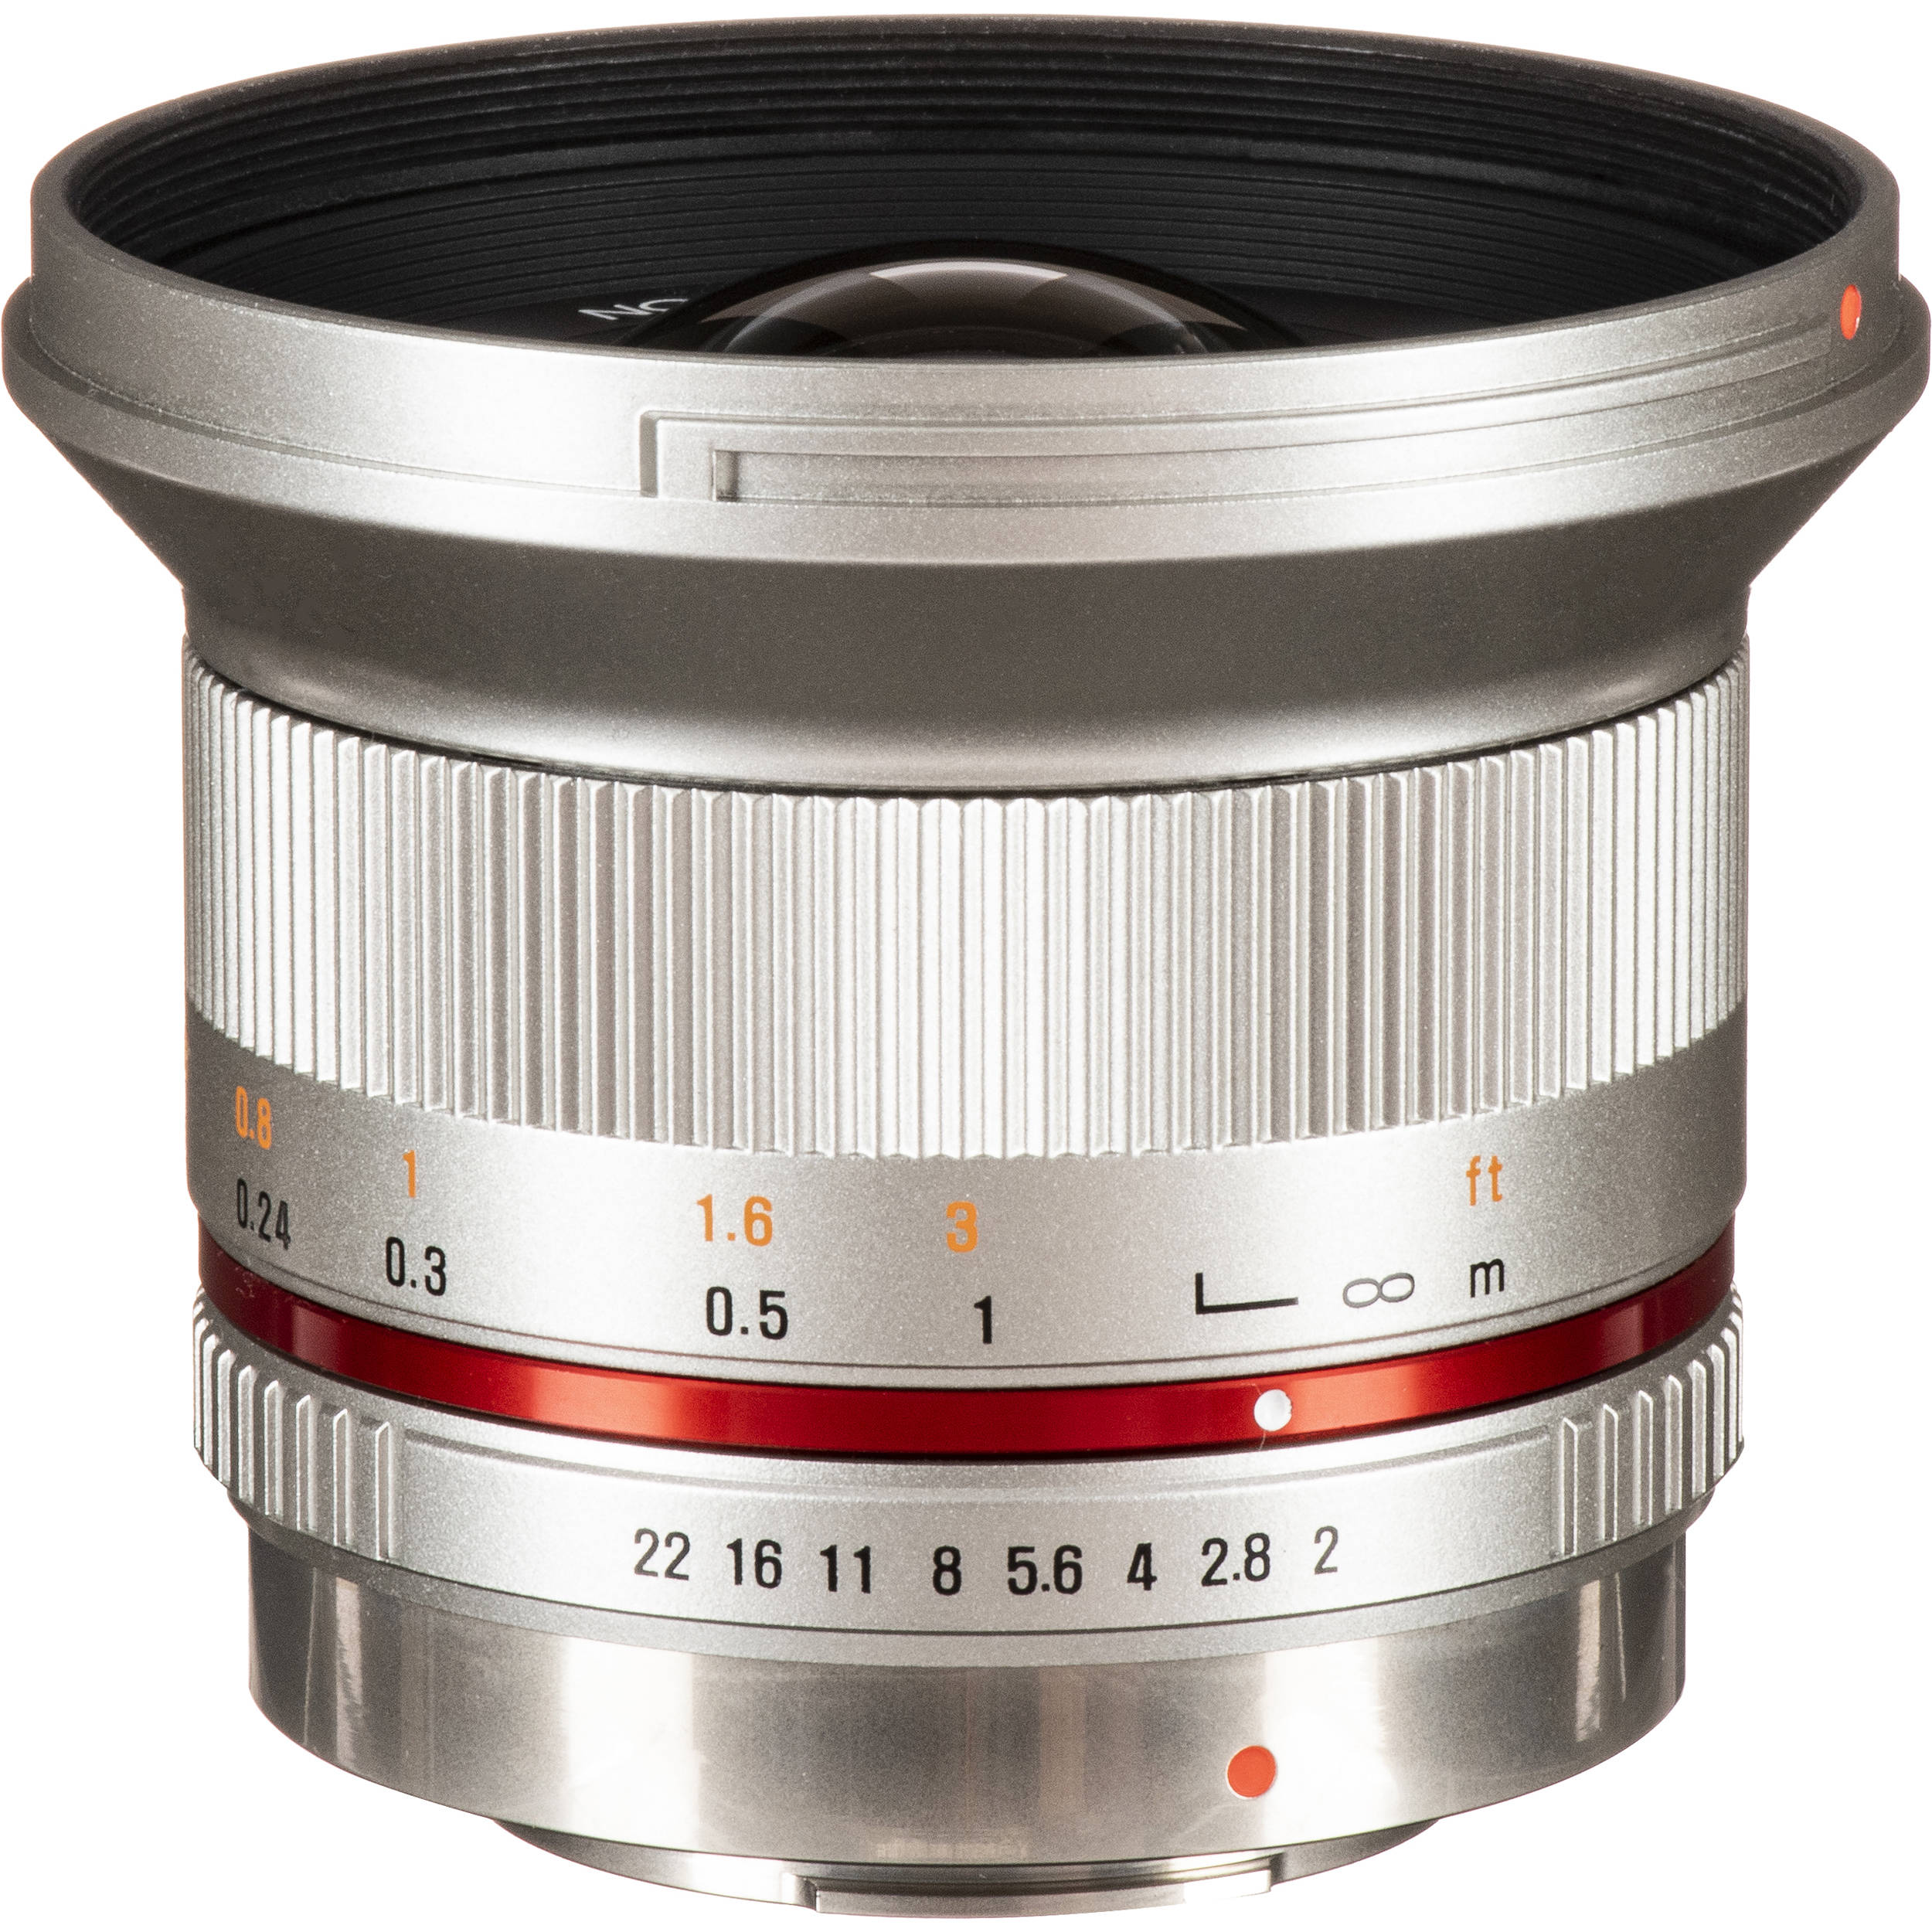 Rokinon 12mm f/2 0 NCS CS Lens for Micro Four Thirds Mount (Silver)